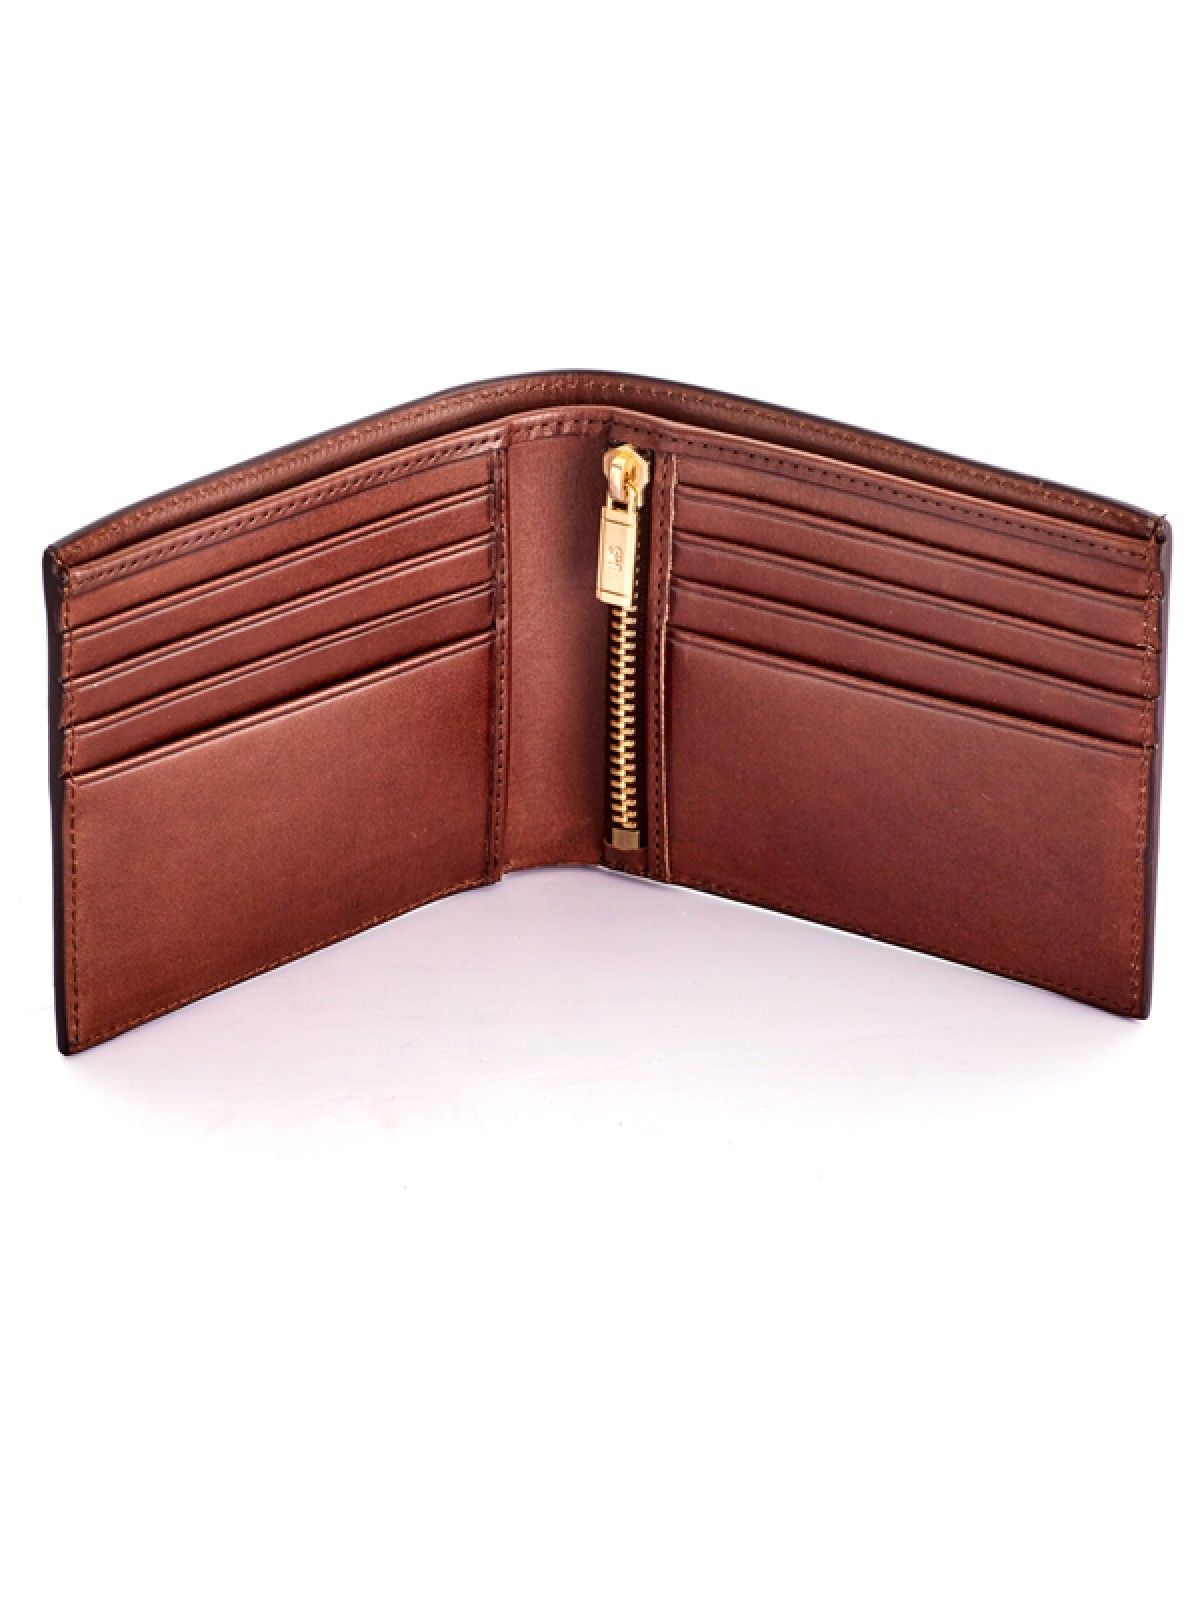 5a22e05d5b0f0e Tempo Nation Slim Zip Wallet   Wallets   H & S Slim Leather Wallet, Handmade